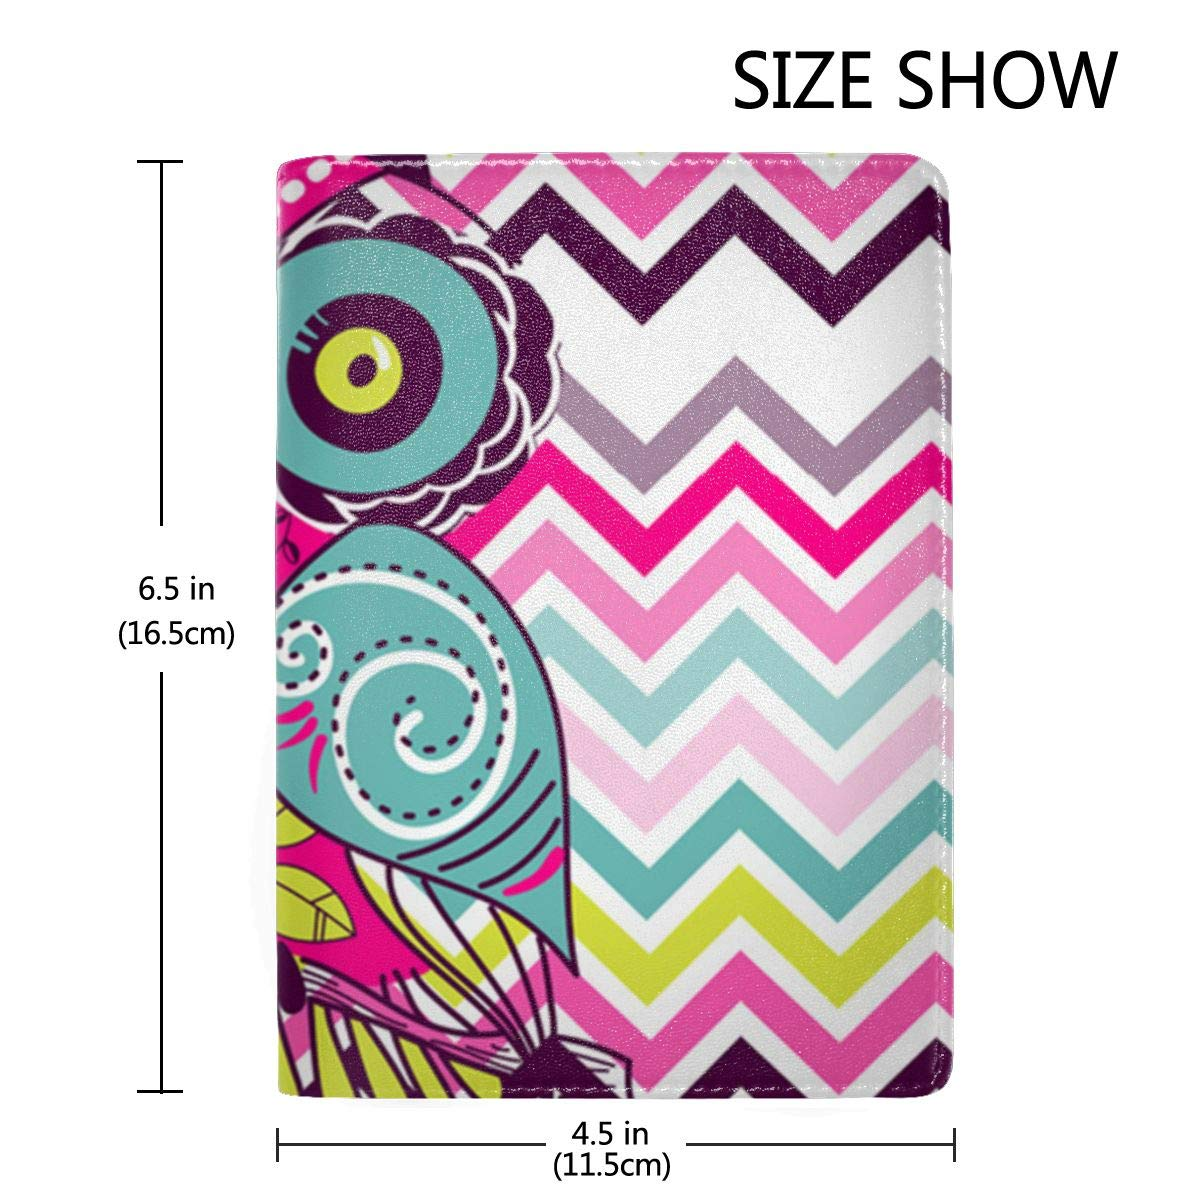 Chevron Retro Groovy Owl Fashion Leather Passport Holder Cover Case Travel Wallet 6.5 In